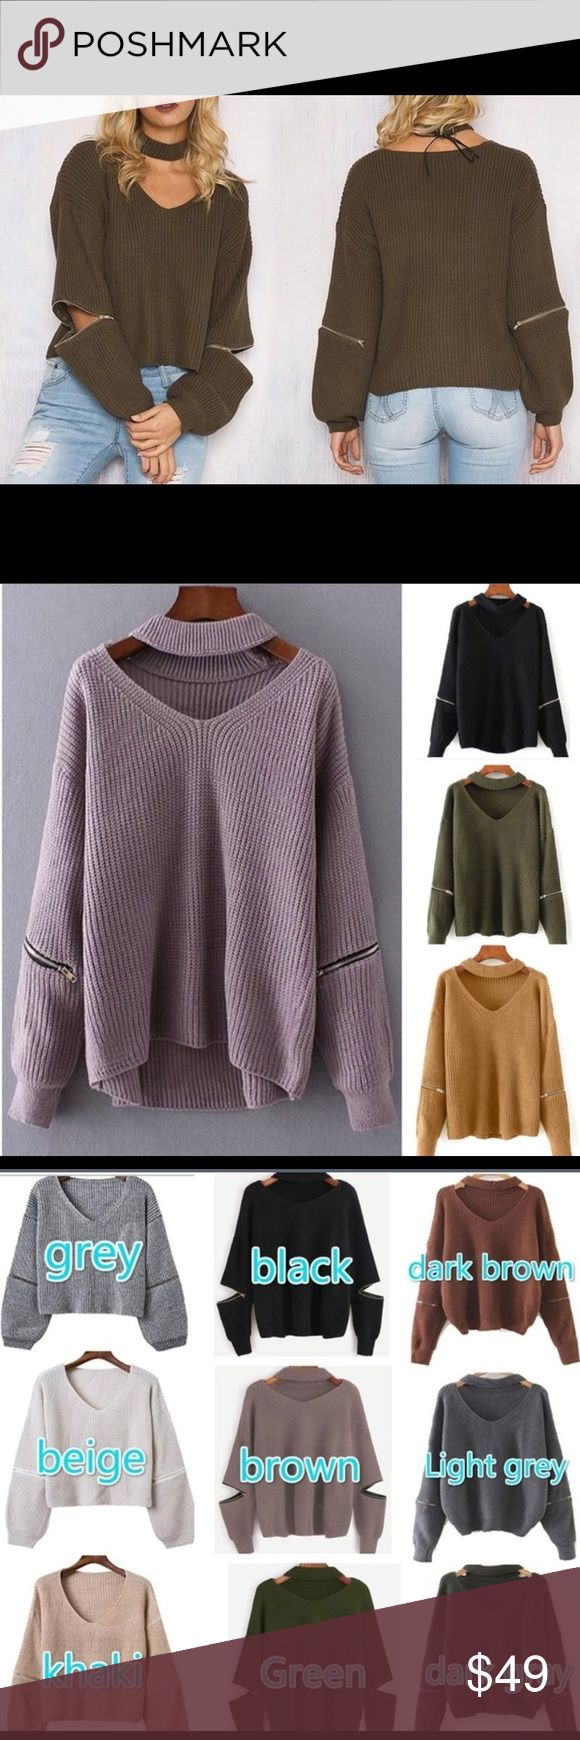 Choker sweater Pre order now Coming soon Choker +zip full sleeves sweater. Coming soon please comment below with your size and color you want so I can tag you when it arrives . Only few left.  Available in all size and colors as listed in the pictures. Coming soon. Pre order it if you like it . Very comfy soft and warm . Sweaters Cowl & Turtlenecks